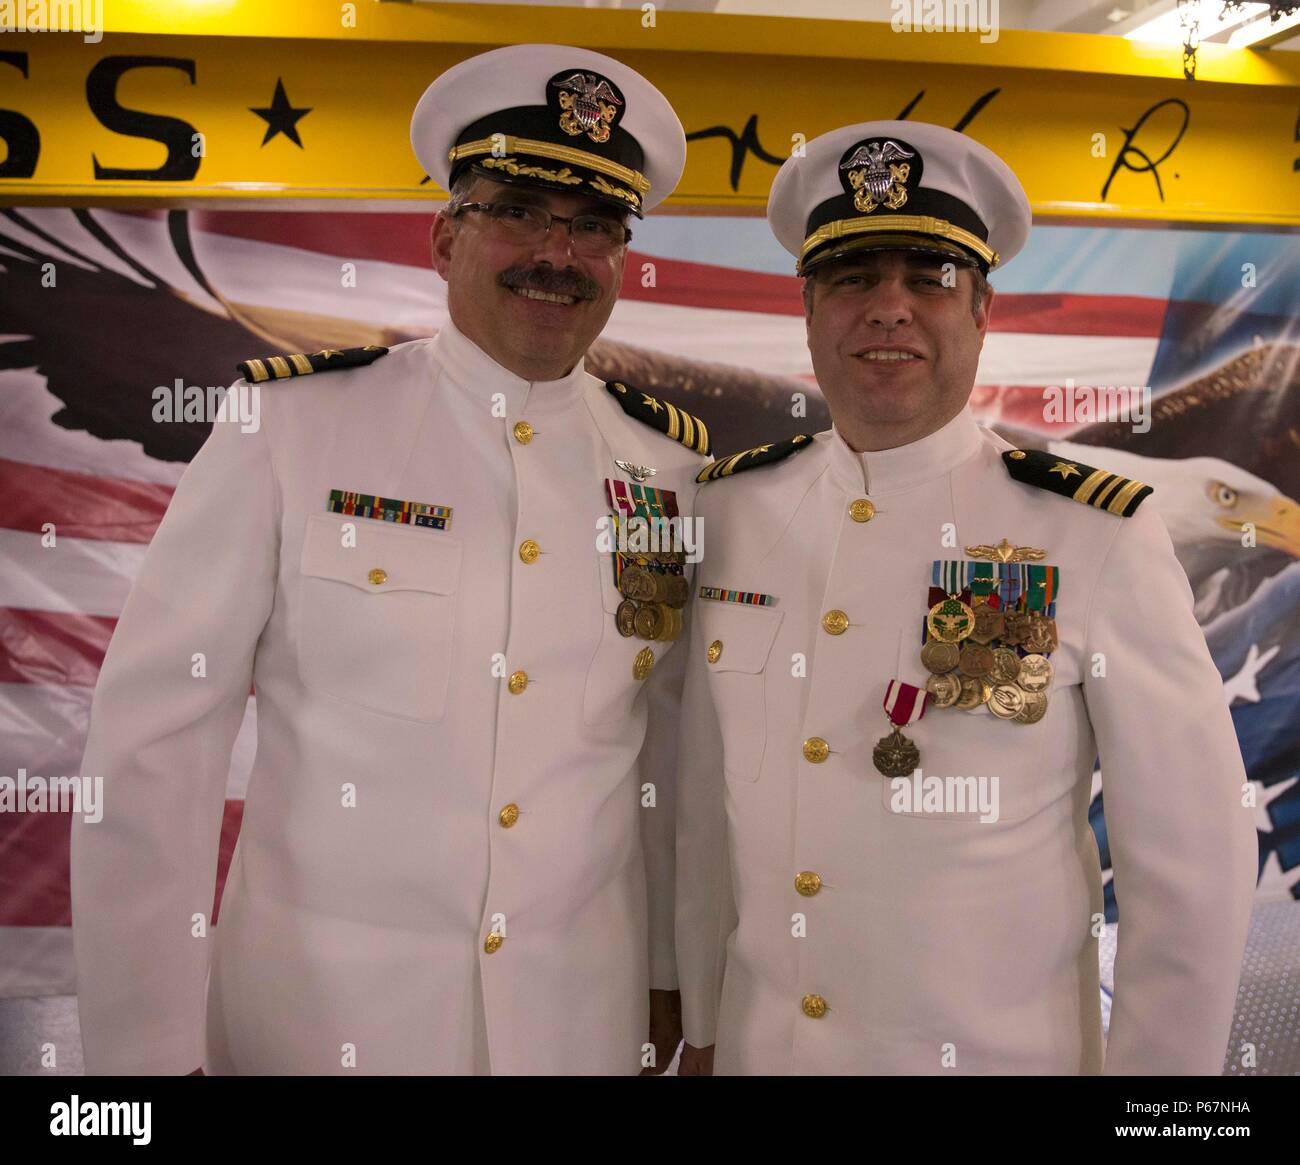 NEWPORT NEWS, Va. (May 13, 2016) --Cmdr. Gilbert Mucke, assigned to Pre-Commissioning Unit Gerald R. Ford (CVN 78), poses with his protégé, Lt. Cmdr. Michael Stone following a retirement ceremony in the ship's forecastle. Ford is the first of a new class of aircraft carriers currently under construction by Huntington Ingalls Industries Newport News Shipbuilding.  (U.S. Navy photo by Mass Communication Specialist Seaman Apprentice Connor Loessin/Released) - Stock Image